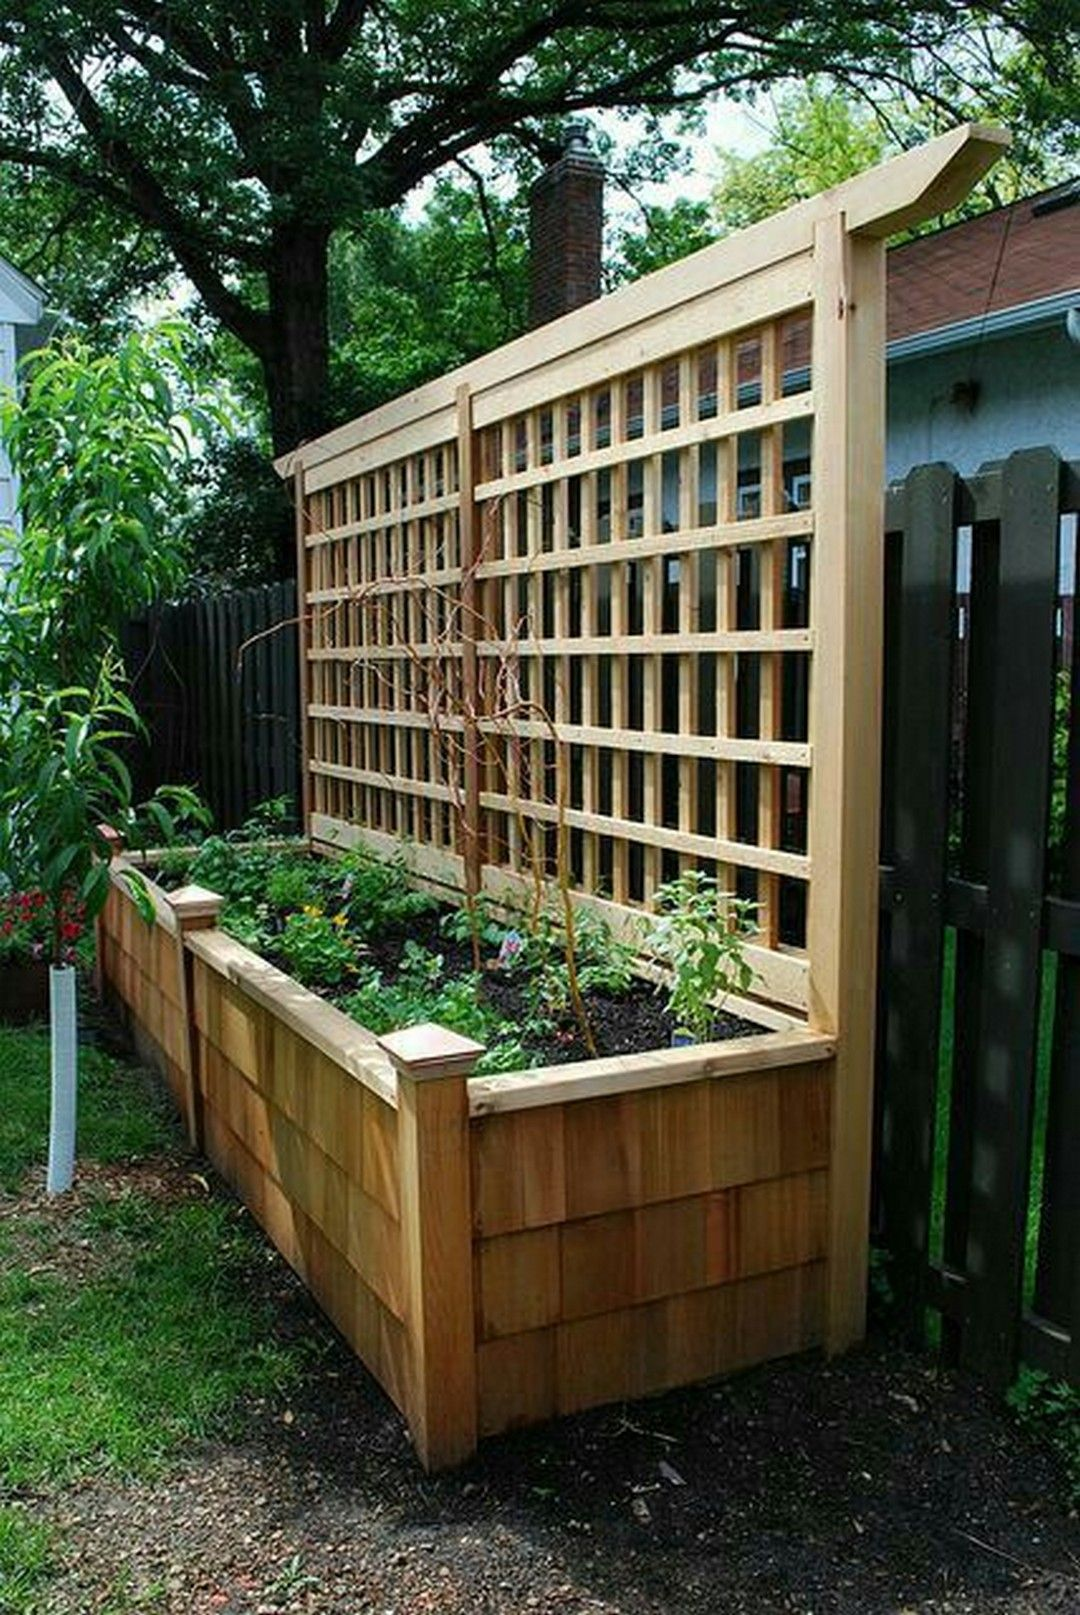 Cheap and easy diy how to make raised garden beds with fence cheap and easy diy how to make raised garden beds with fence solutioingenieria Images